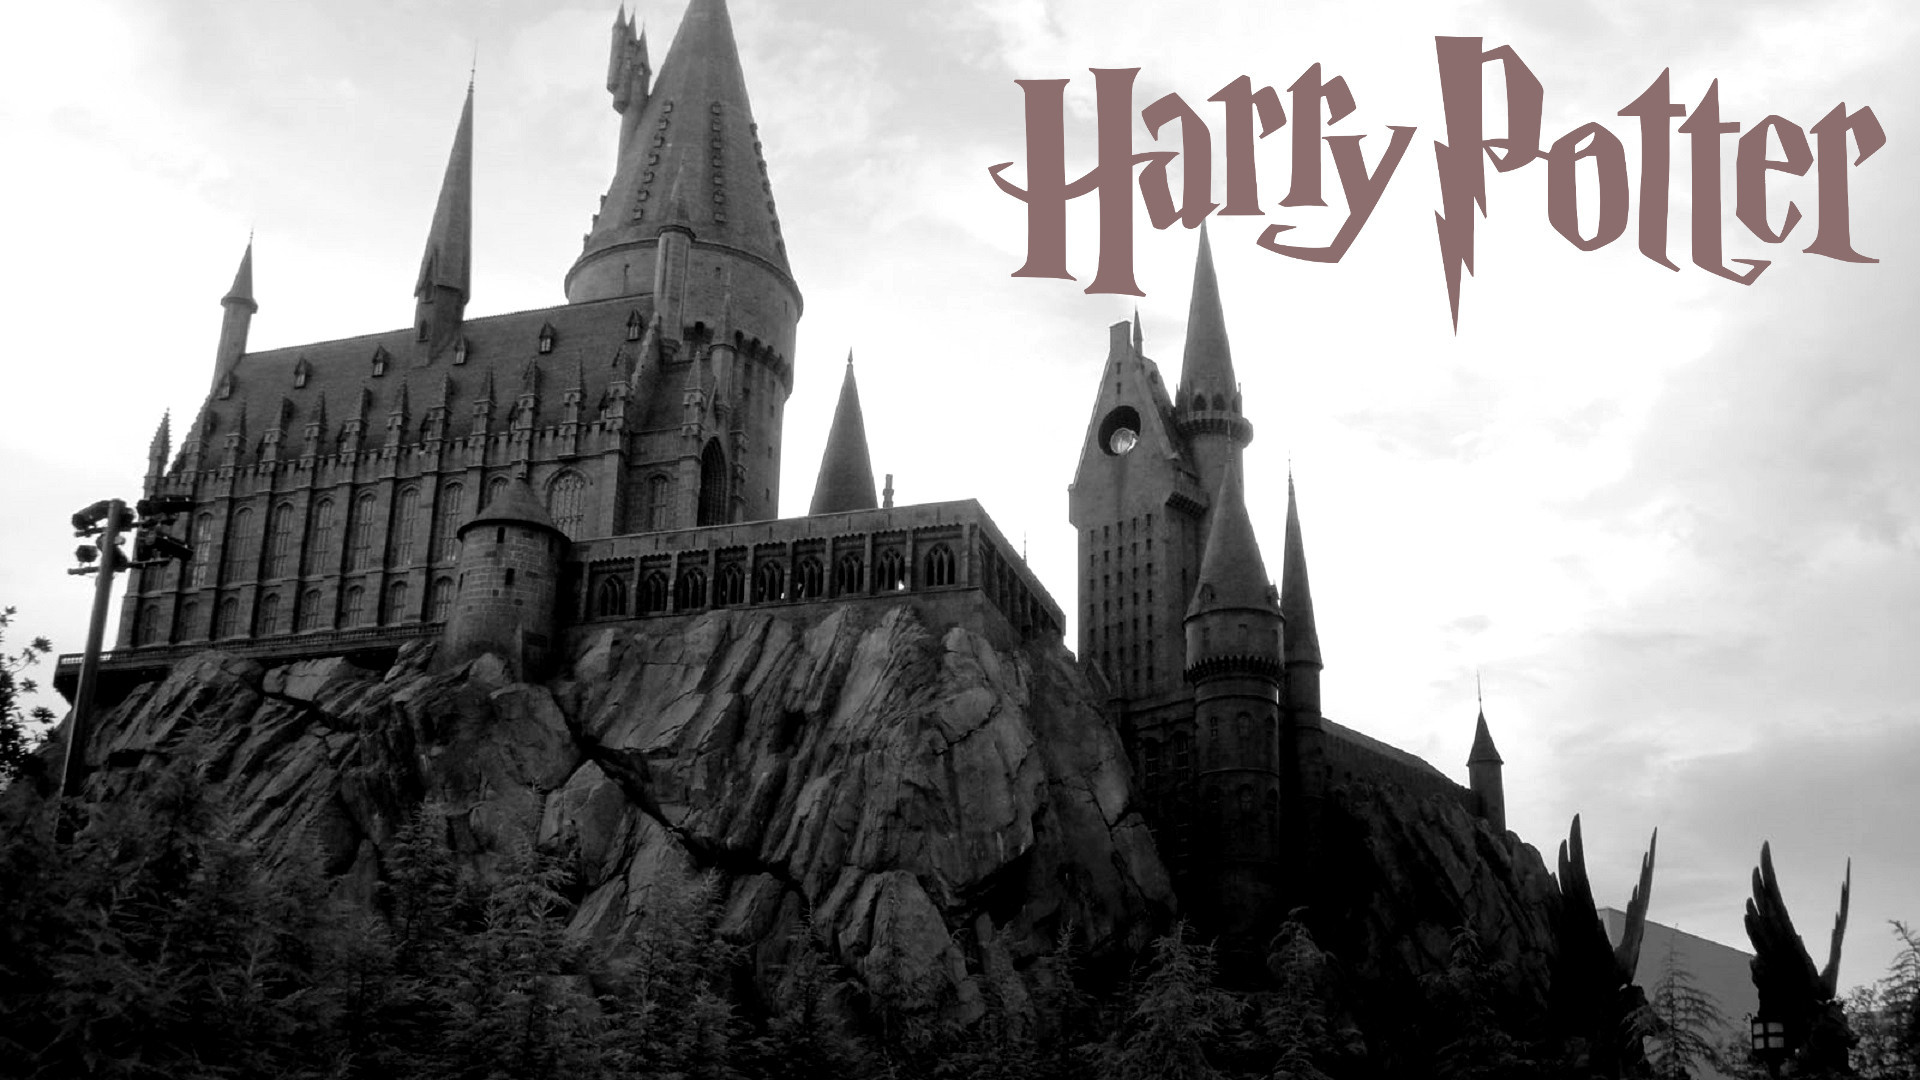 Res: 1920x1080, Harry Potter Wallpaper with logo and Hogwarts